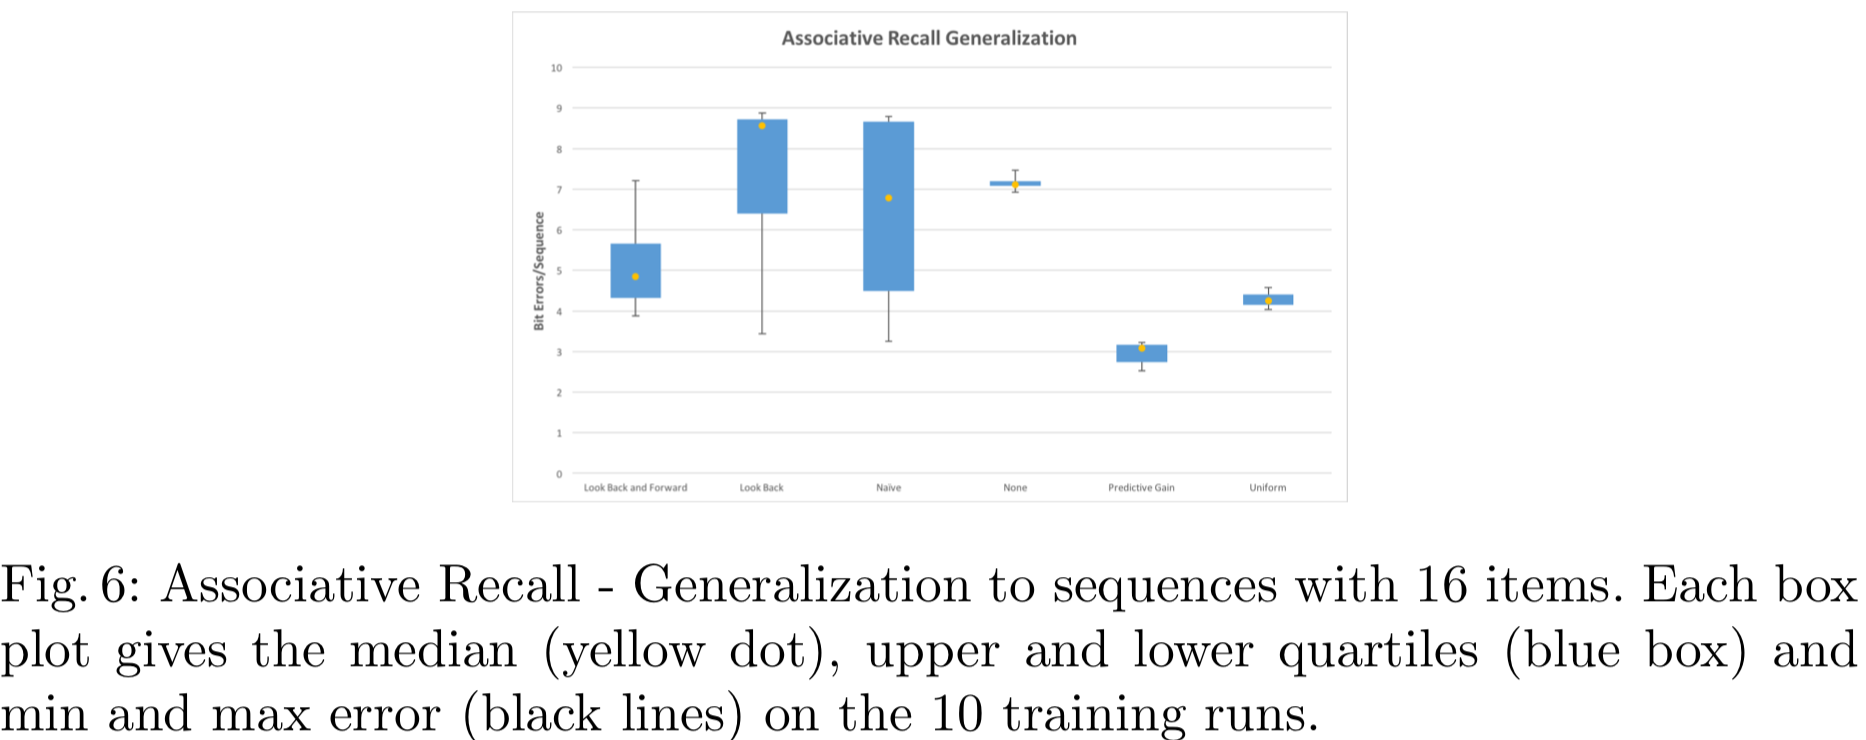 Fig. 6: Associative Recall - Generalization to sequences with 16 items. Each box plot gives the median (yellow dot), upper and lower quartiles (blue box) and min and max error (black lines) on the 10 training runs.